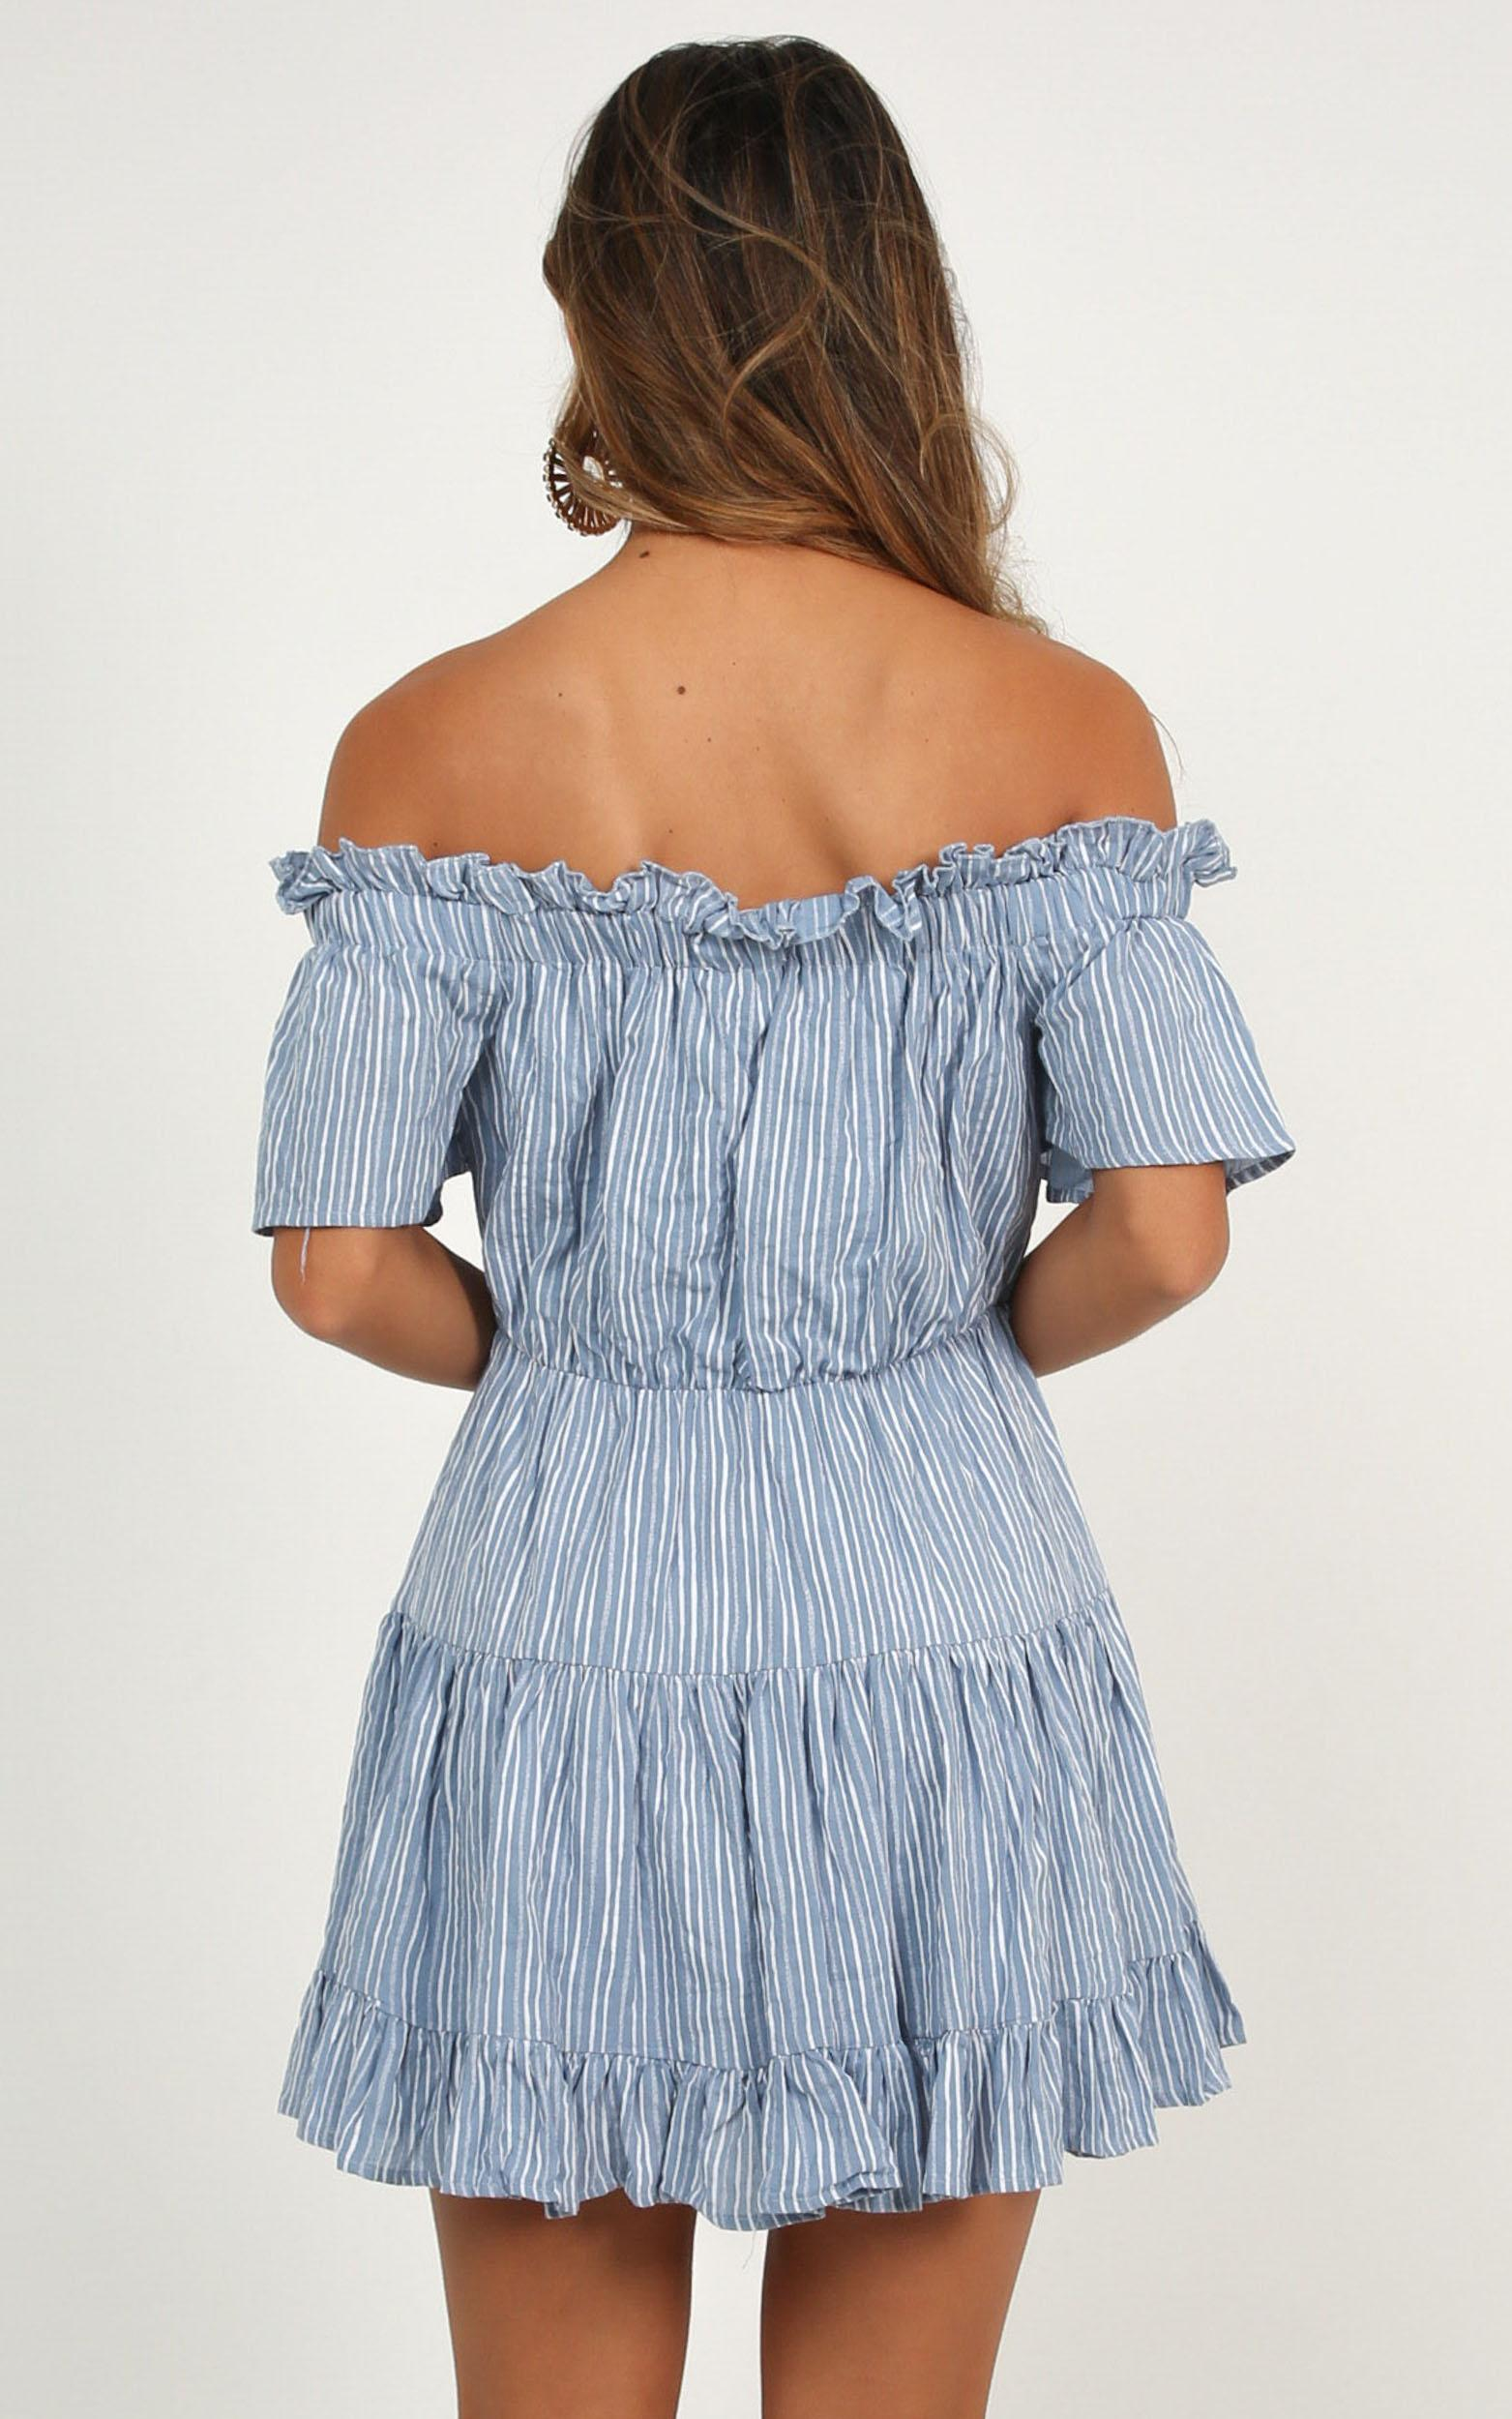 Wish Me Lucky Dress in blue stripe - 12 (L), Blue, hi-res image number null